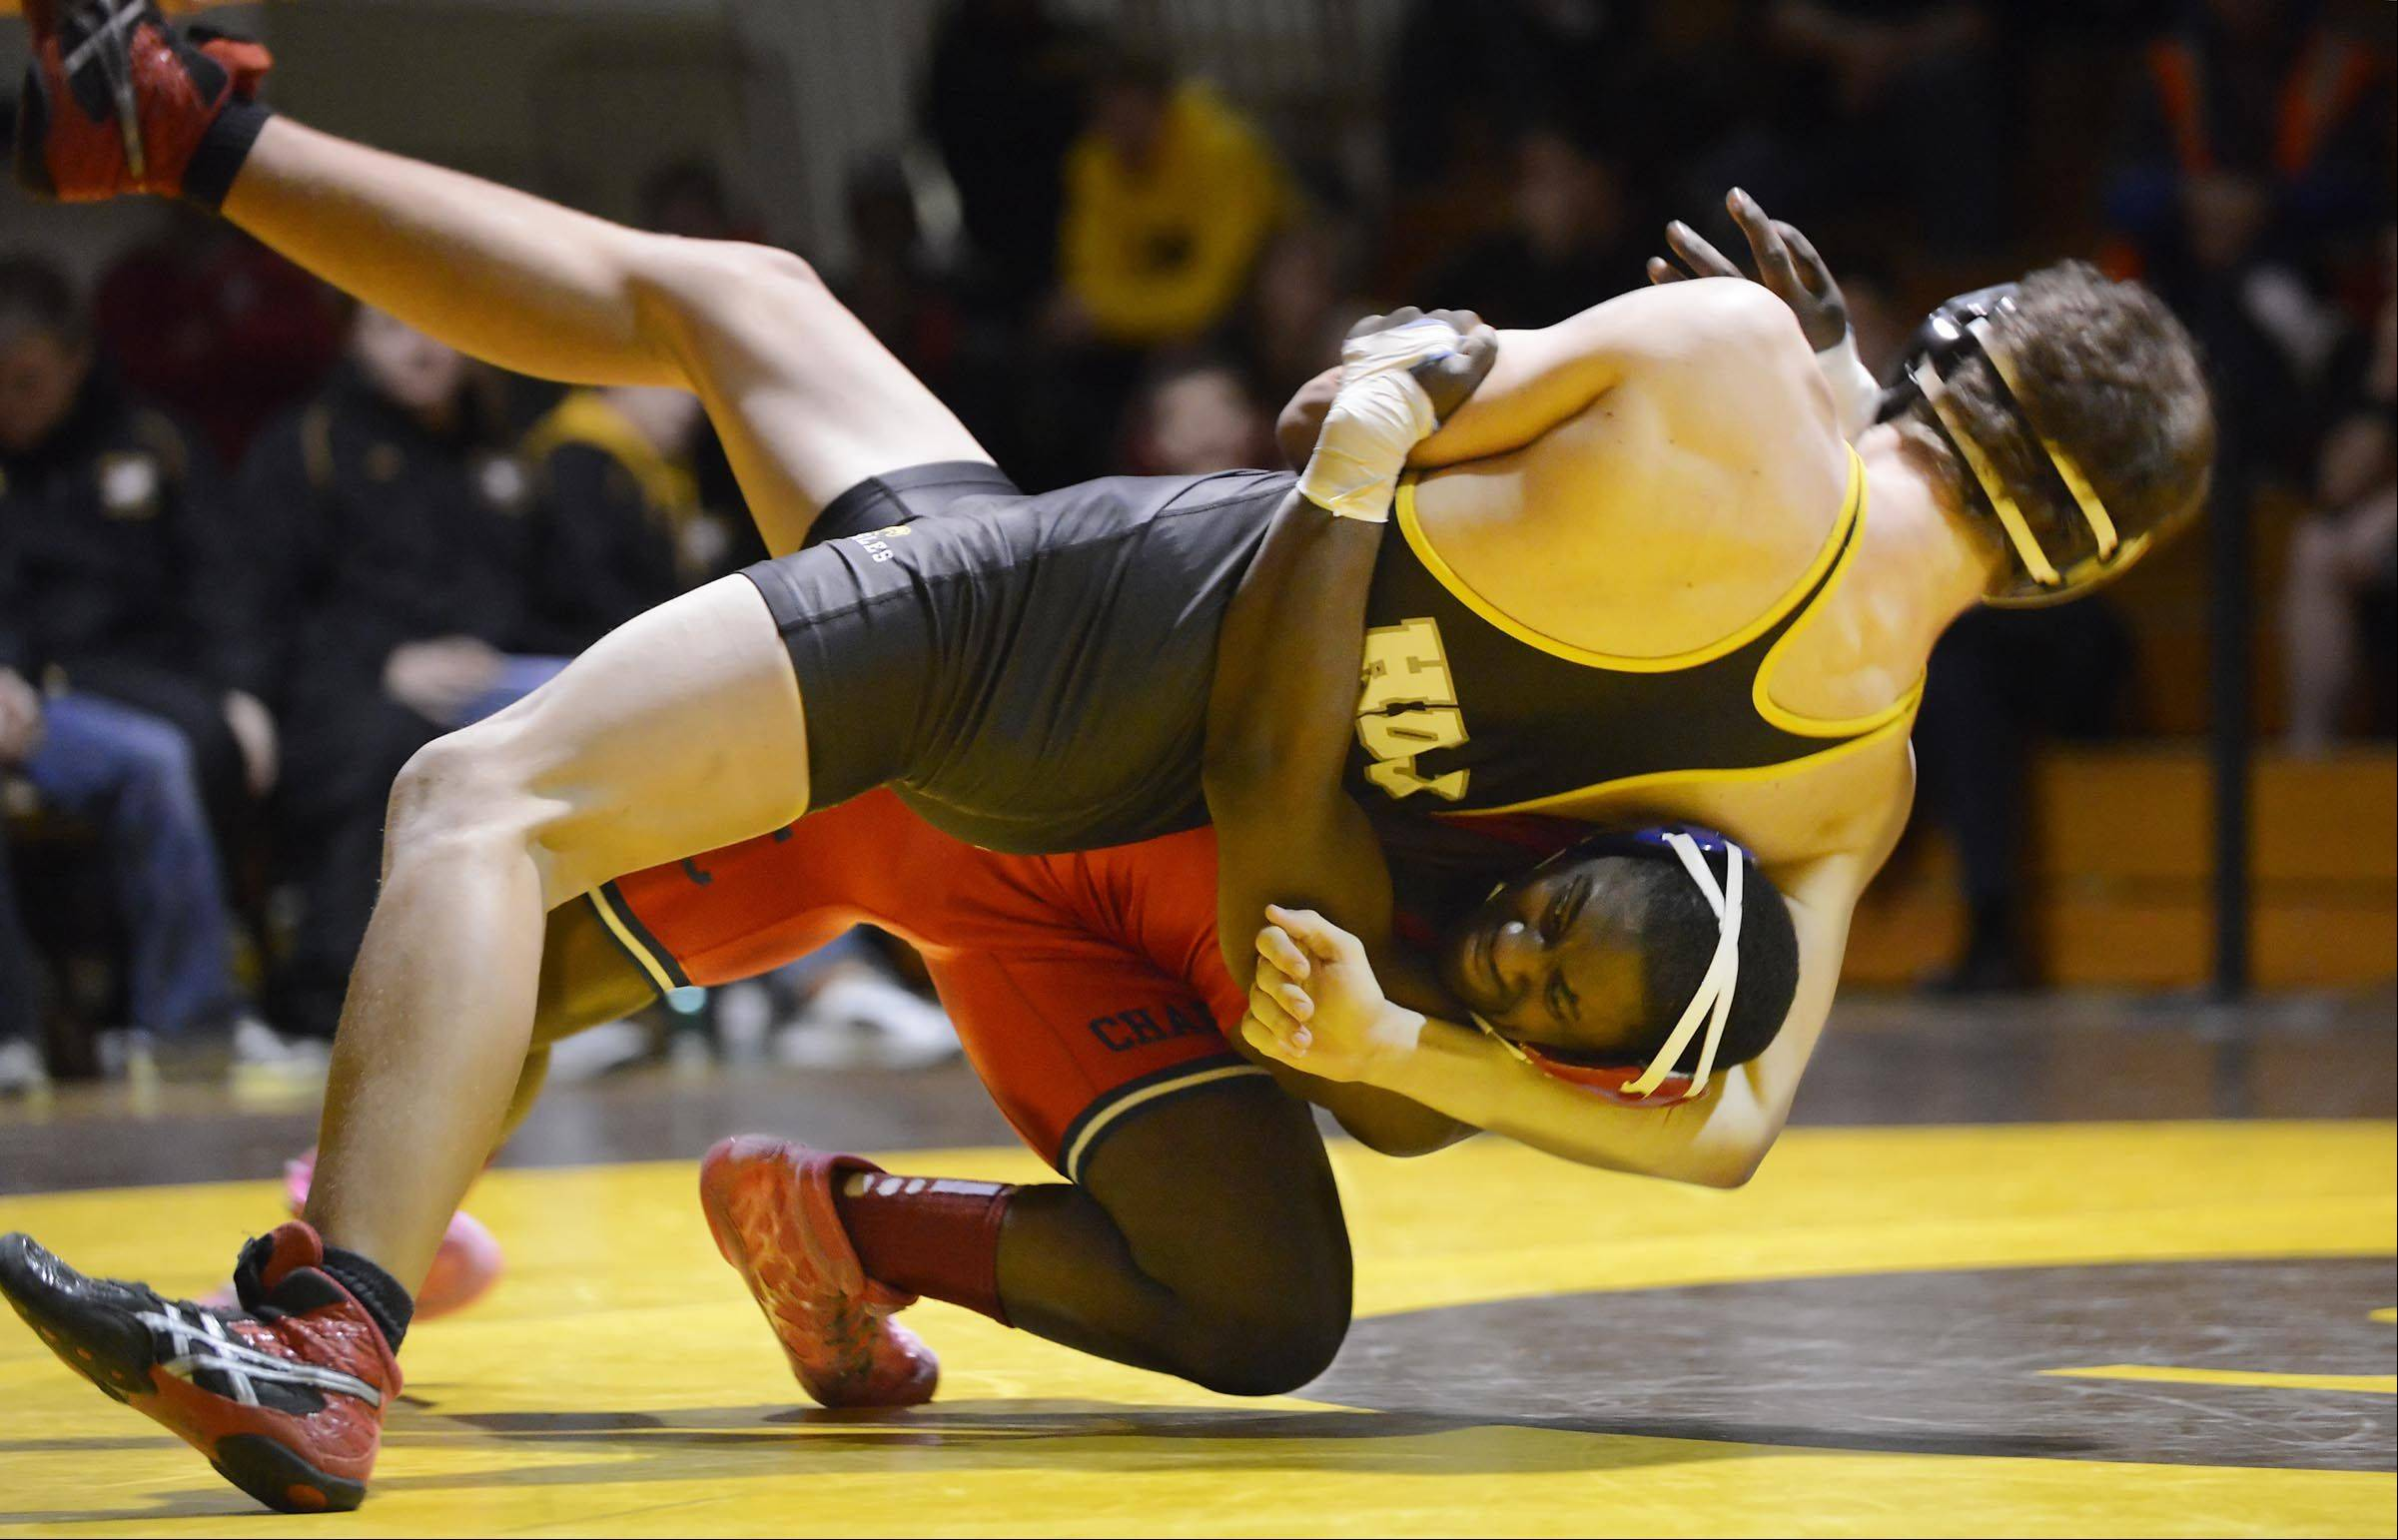 Dundee-Crown's DaShun Lloyd brings down Jacobs' Michael Bujocz Thursday in the 170-pound match in Algonquin.